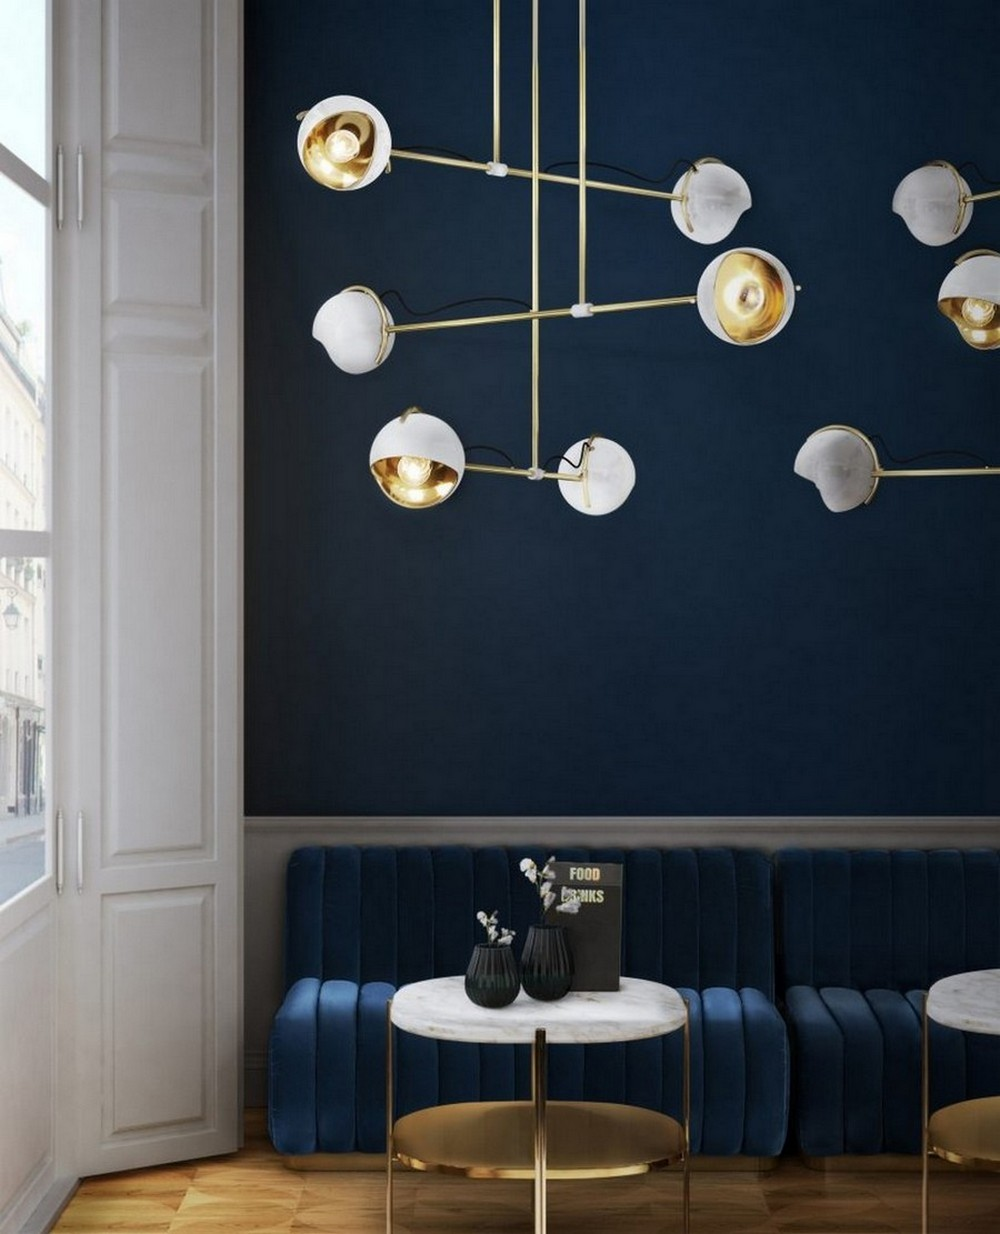 2019 Color Trends That You'll Find In Any Interior Design Shop  2019 color trends 2019 Color Trends That You'll Find In Any Interior Design Shop 2019 Color Trends That Youll Find In Any Interior Design Shop